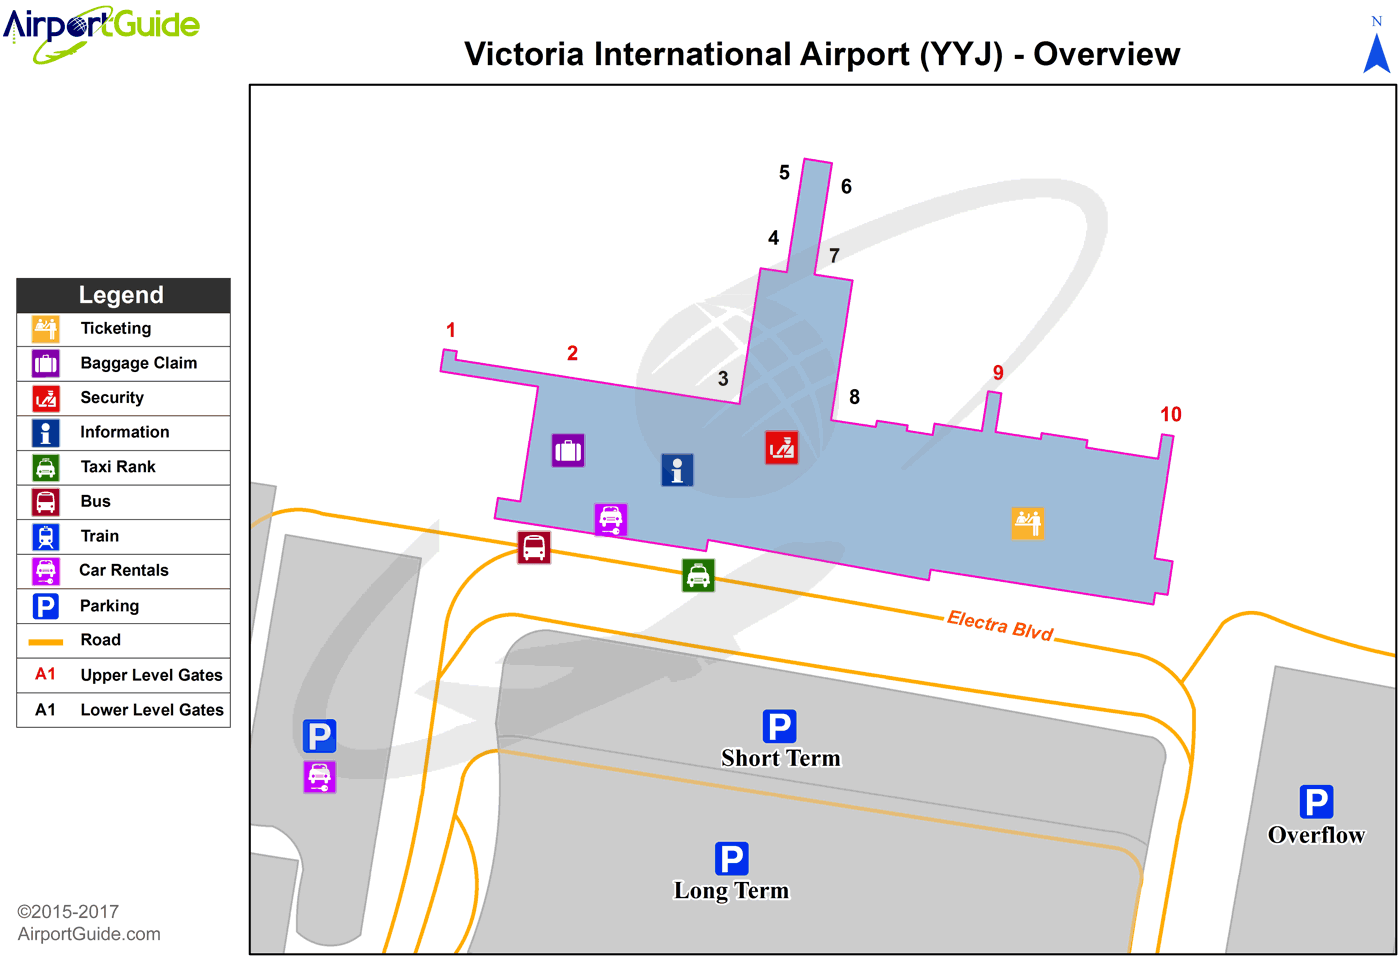 Victoria - Victoria International (YYJ) Airport Terminal Map - Overview